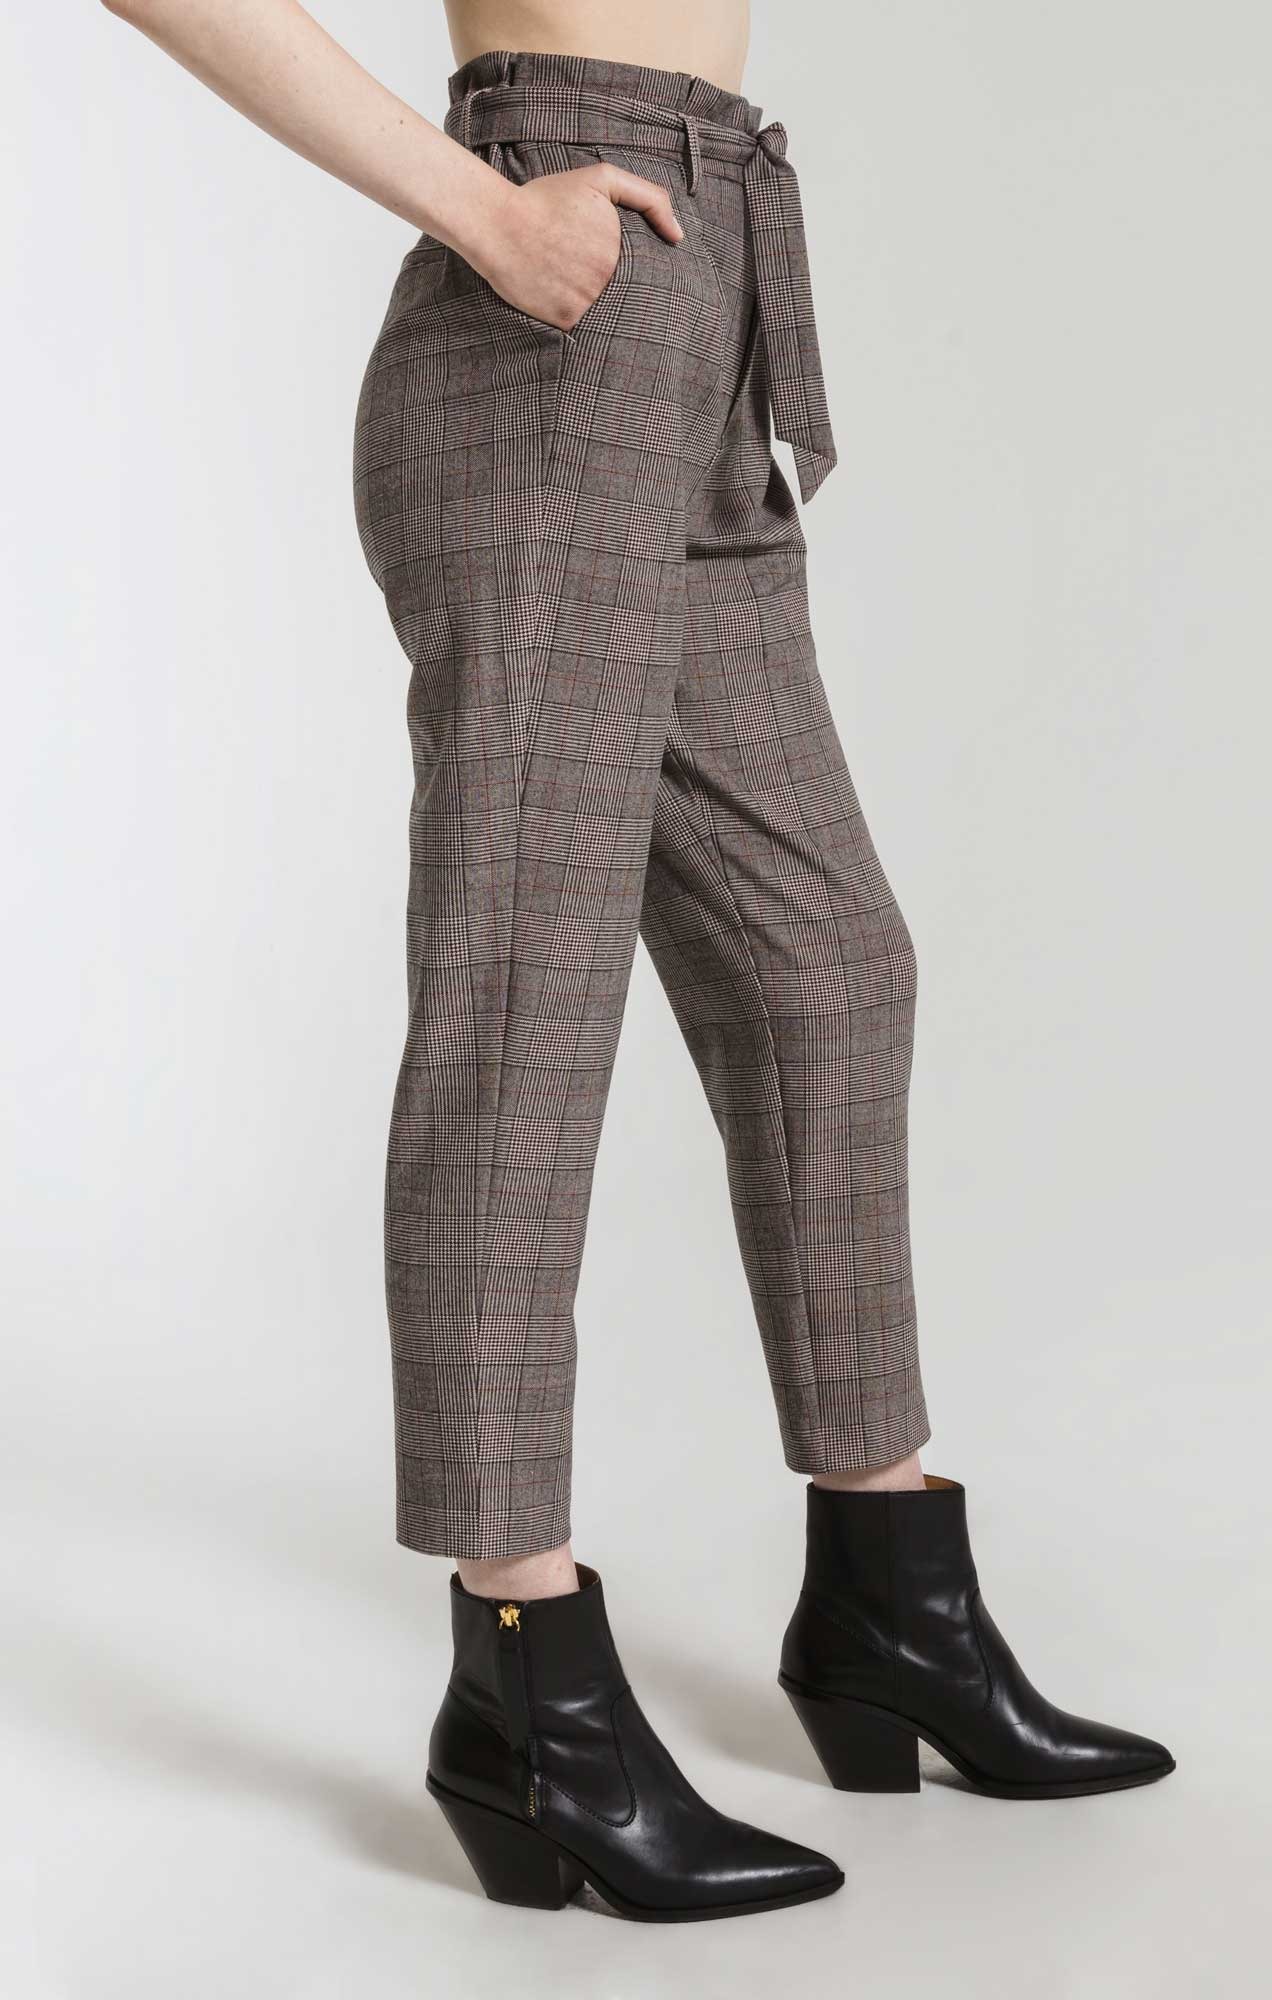 Pants Regina Plaid Cropped Pant By Rag Poets Cafe Creme